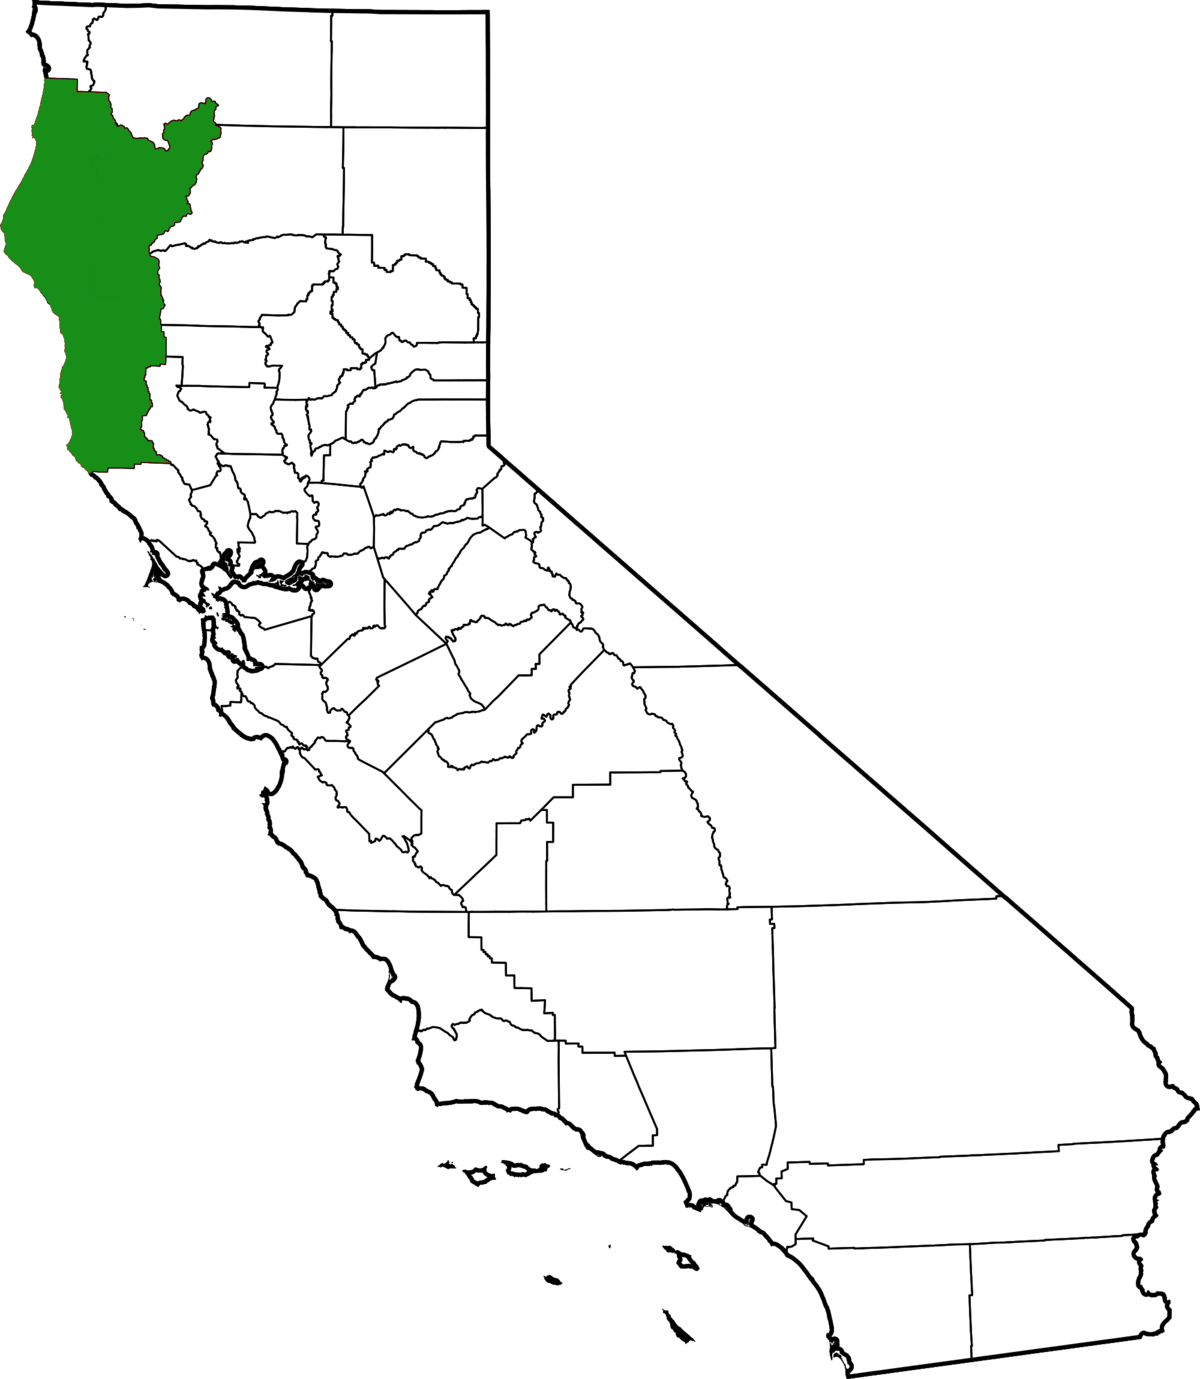 Emerald Triangle - Wikipedia on map of forest fires, map of ambergris, map of bay village, map of log country cove,